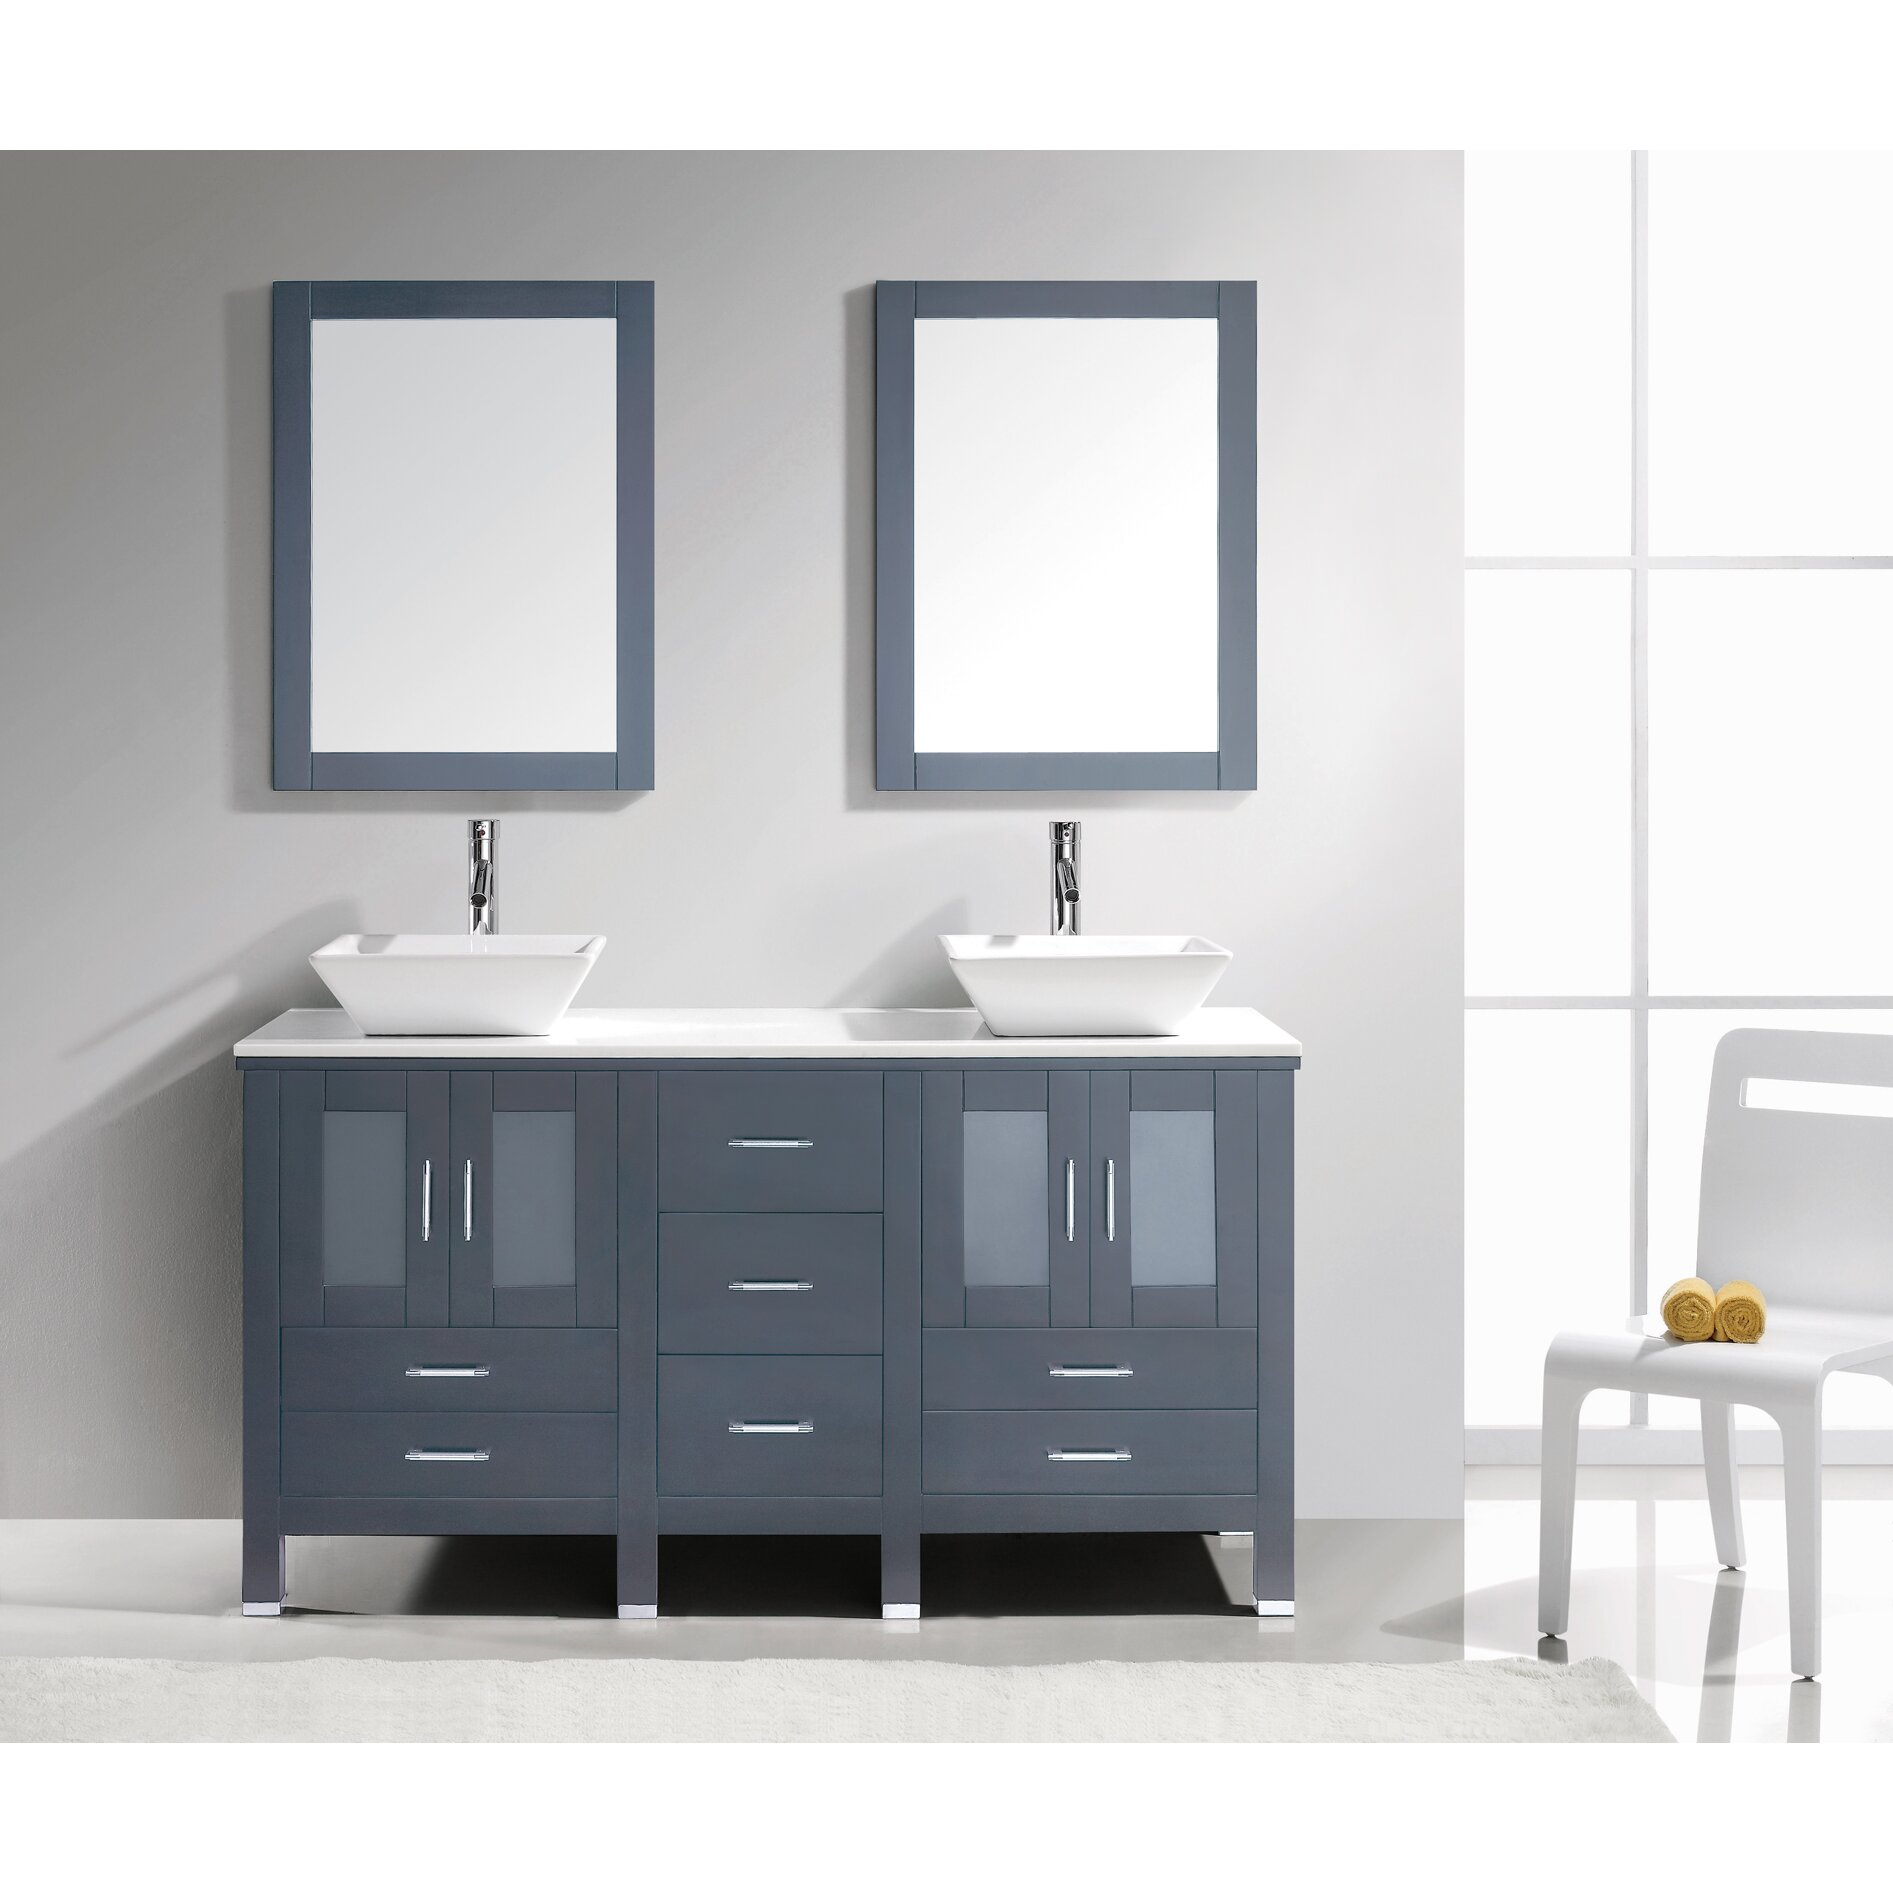 White Double Bathroom Vanities Virtu Usa Bradford 60 Double Bathroom Vanity Set With White Stone